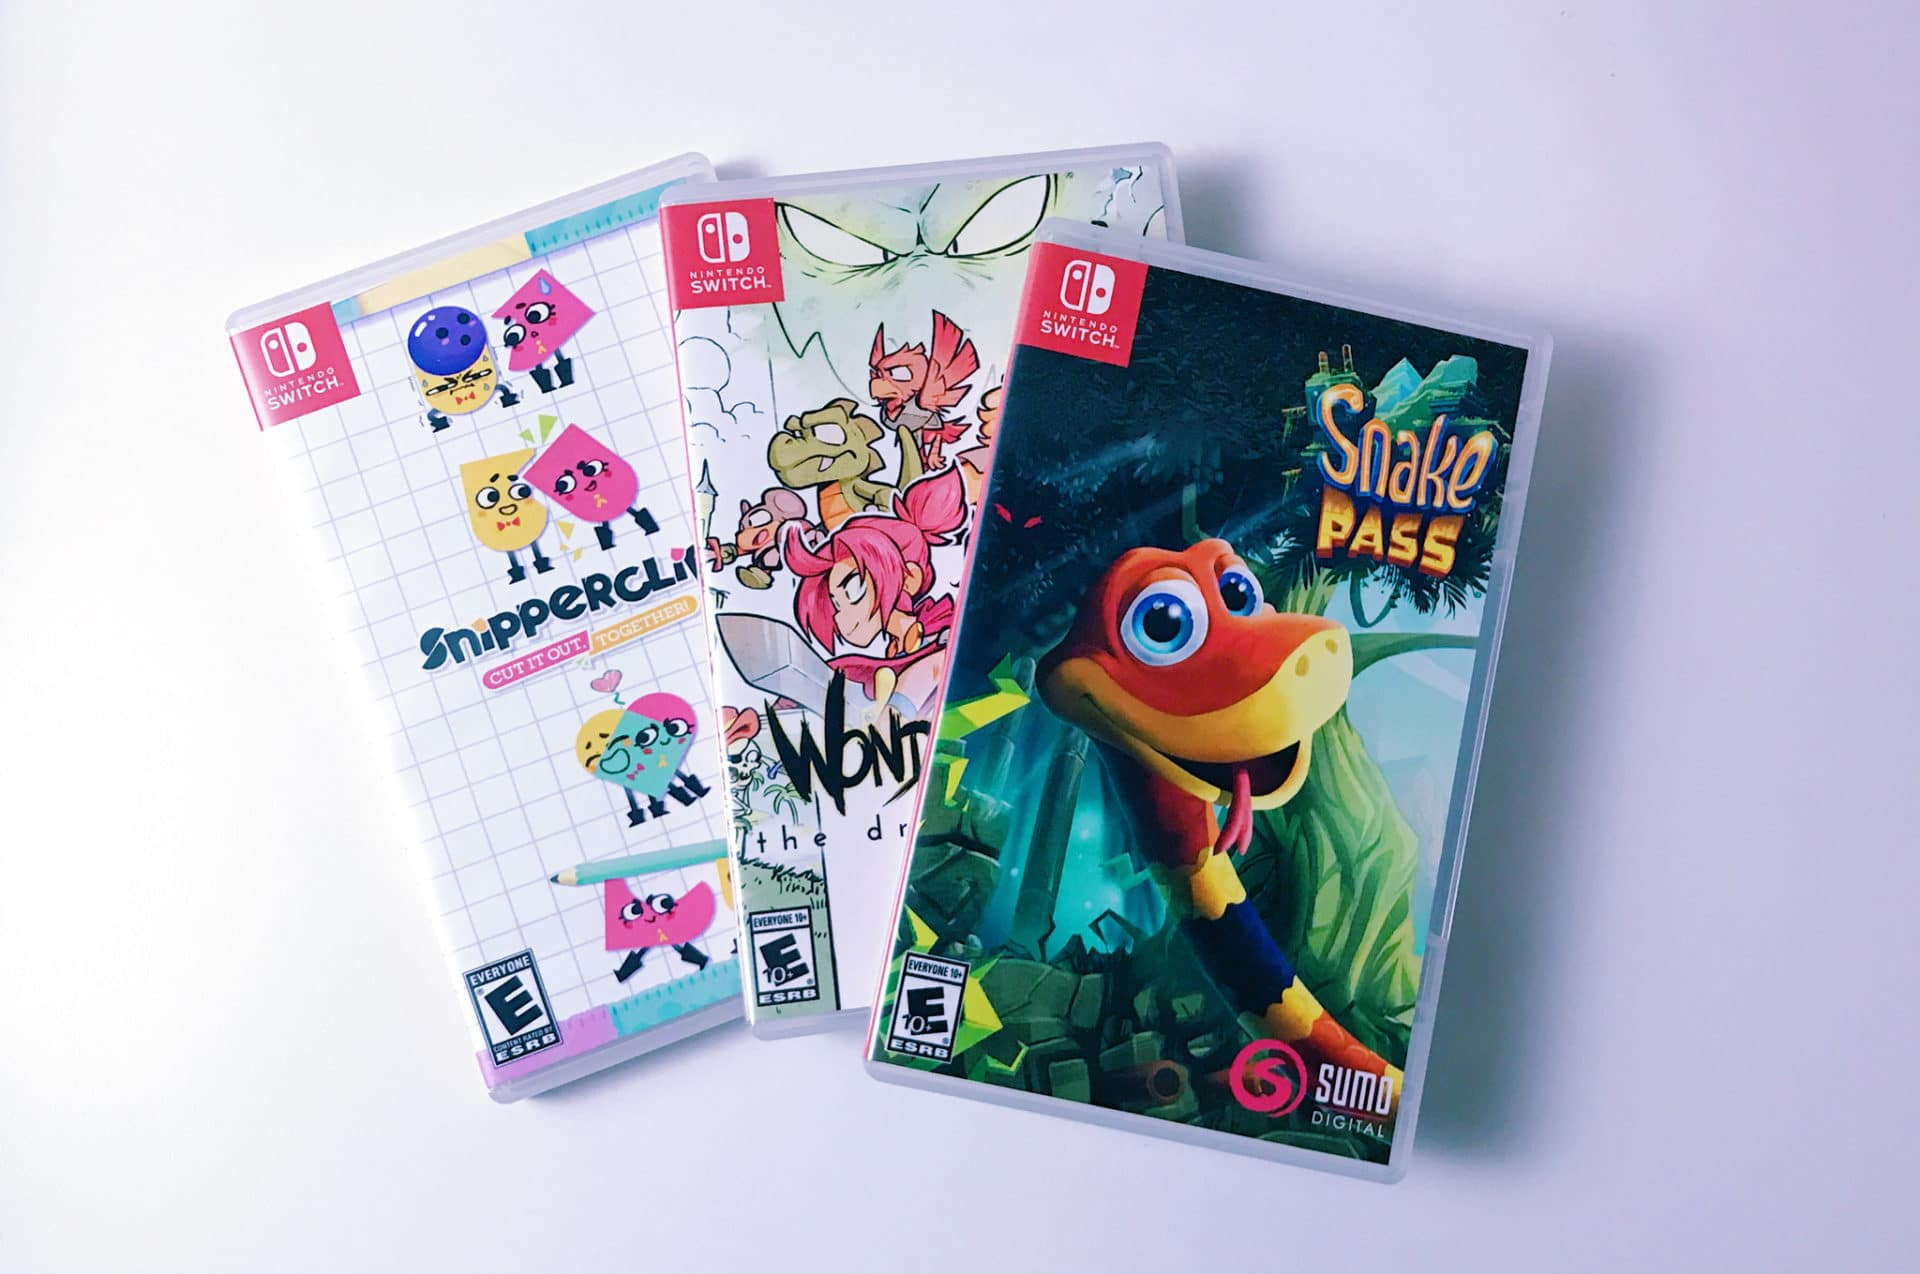 Nintendo Switch game cases have changed